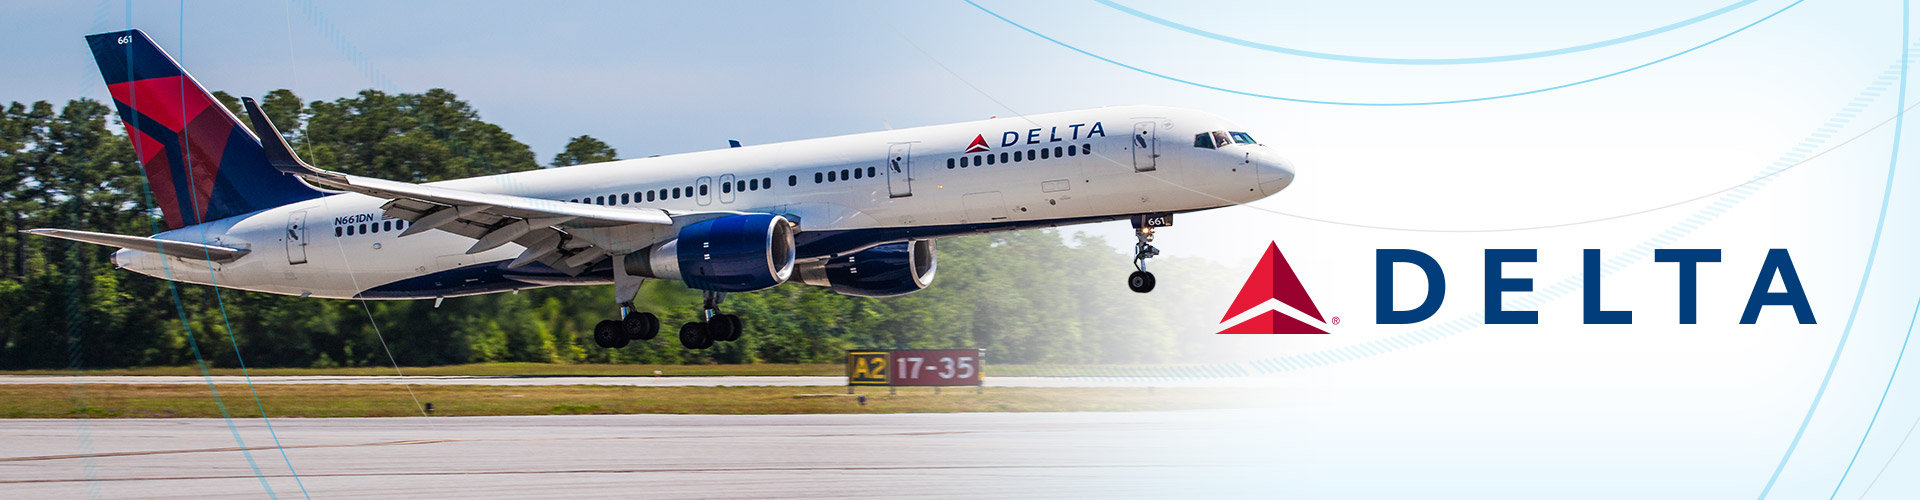 Delta Airlines Booking And Flight Specials Cheap Nigeria